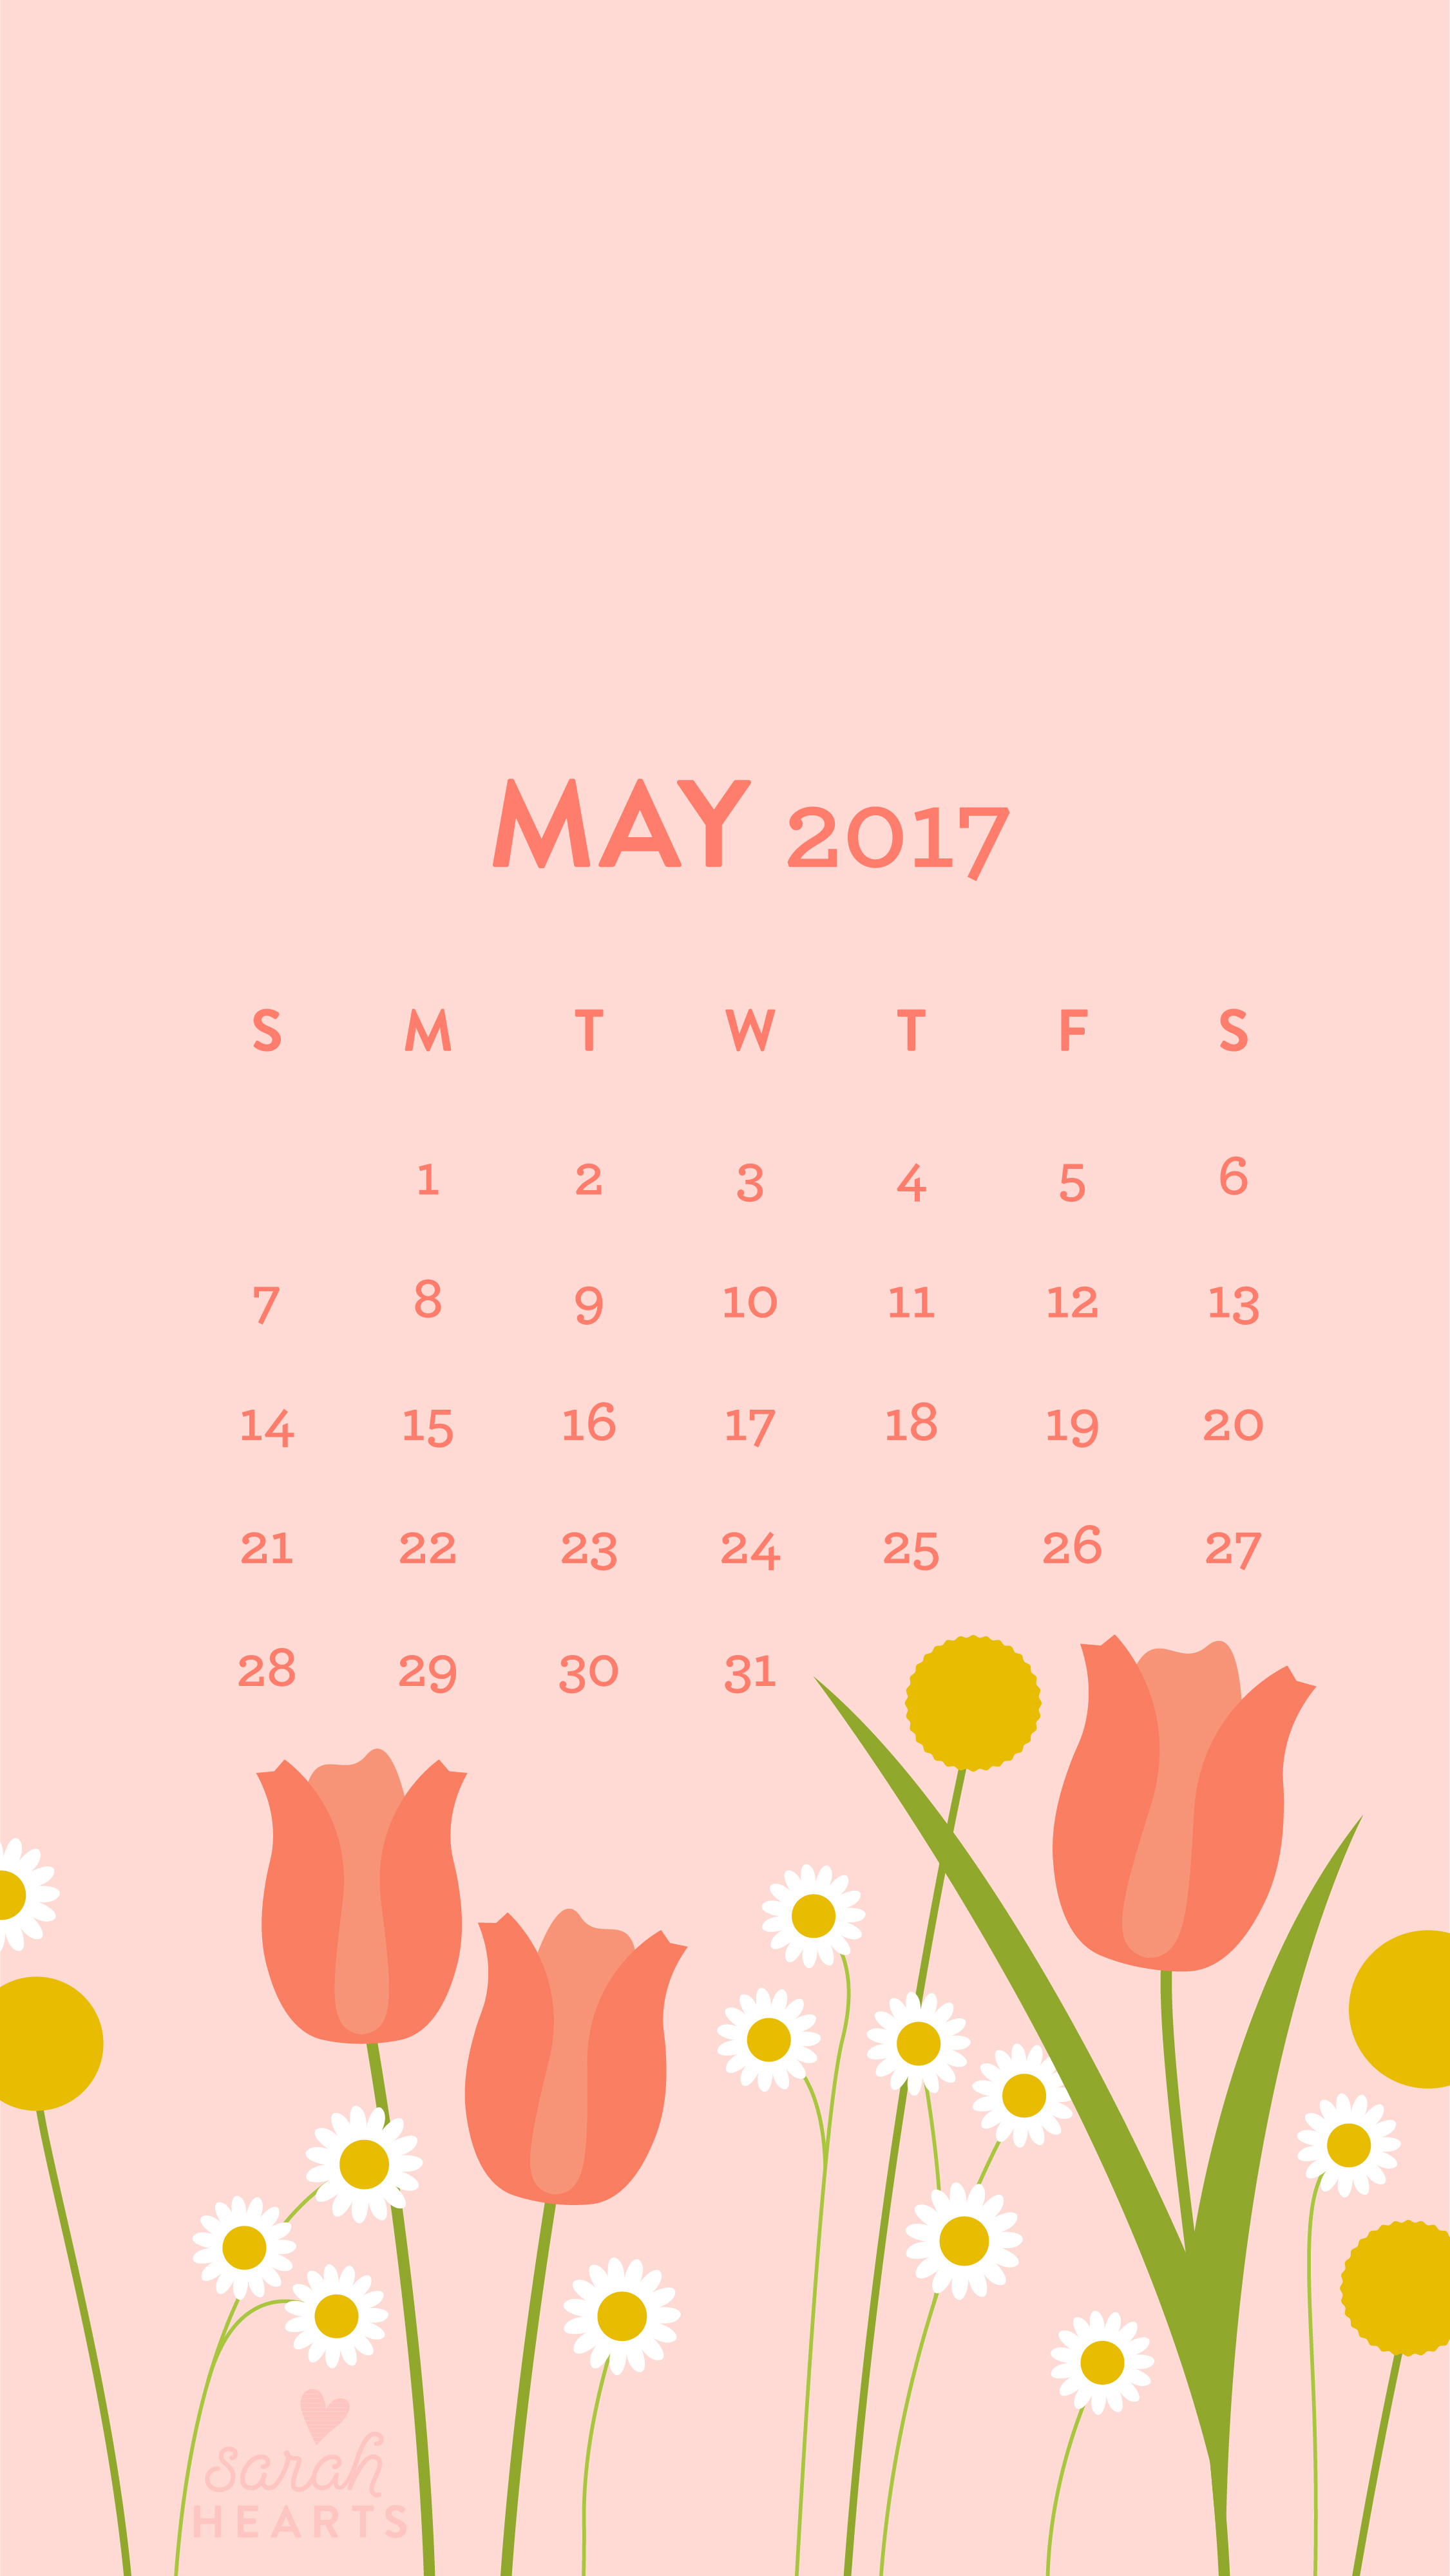 Floral Inspirational Quote Wallpaper May 2017 Calendar Wallpaper Sarah Hearts